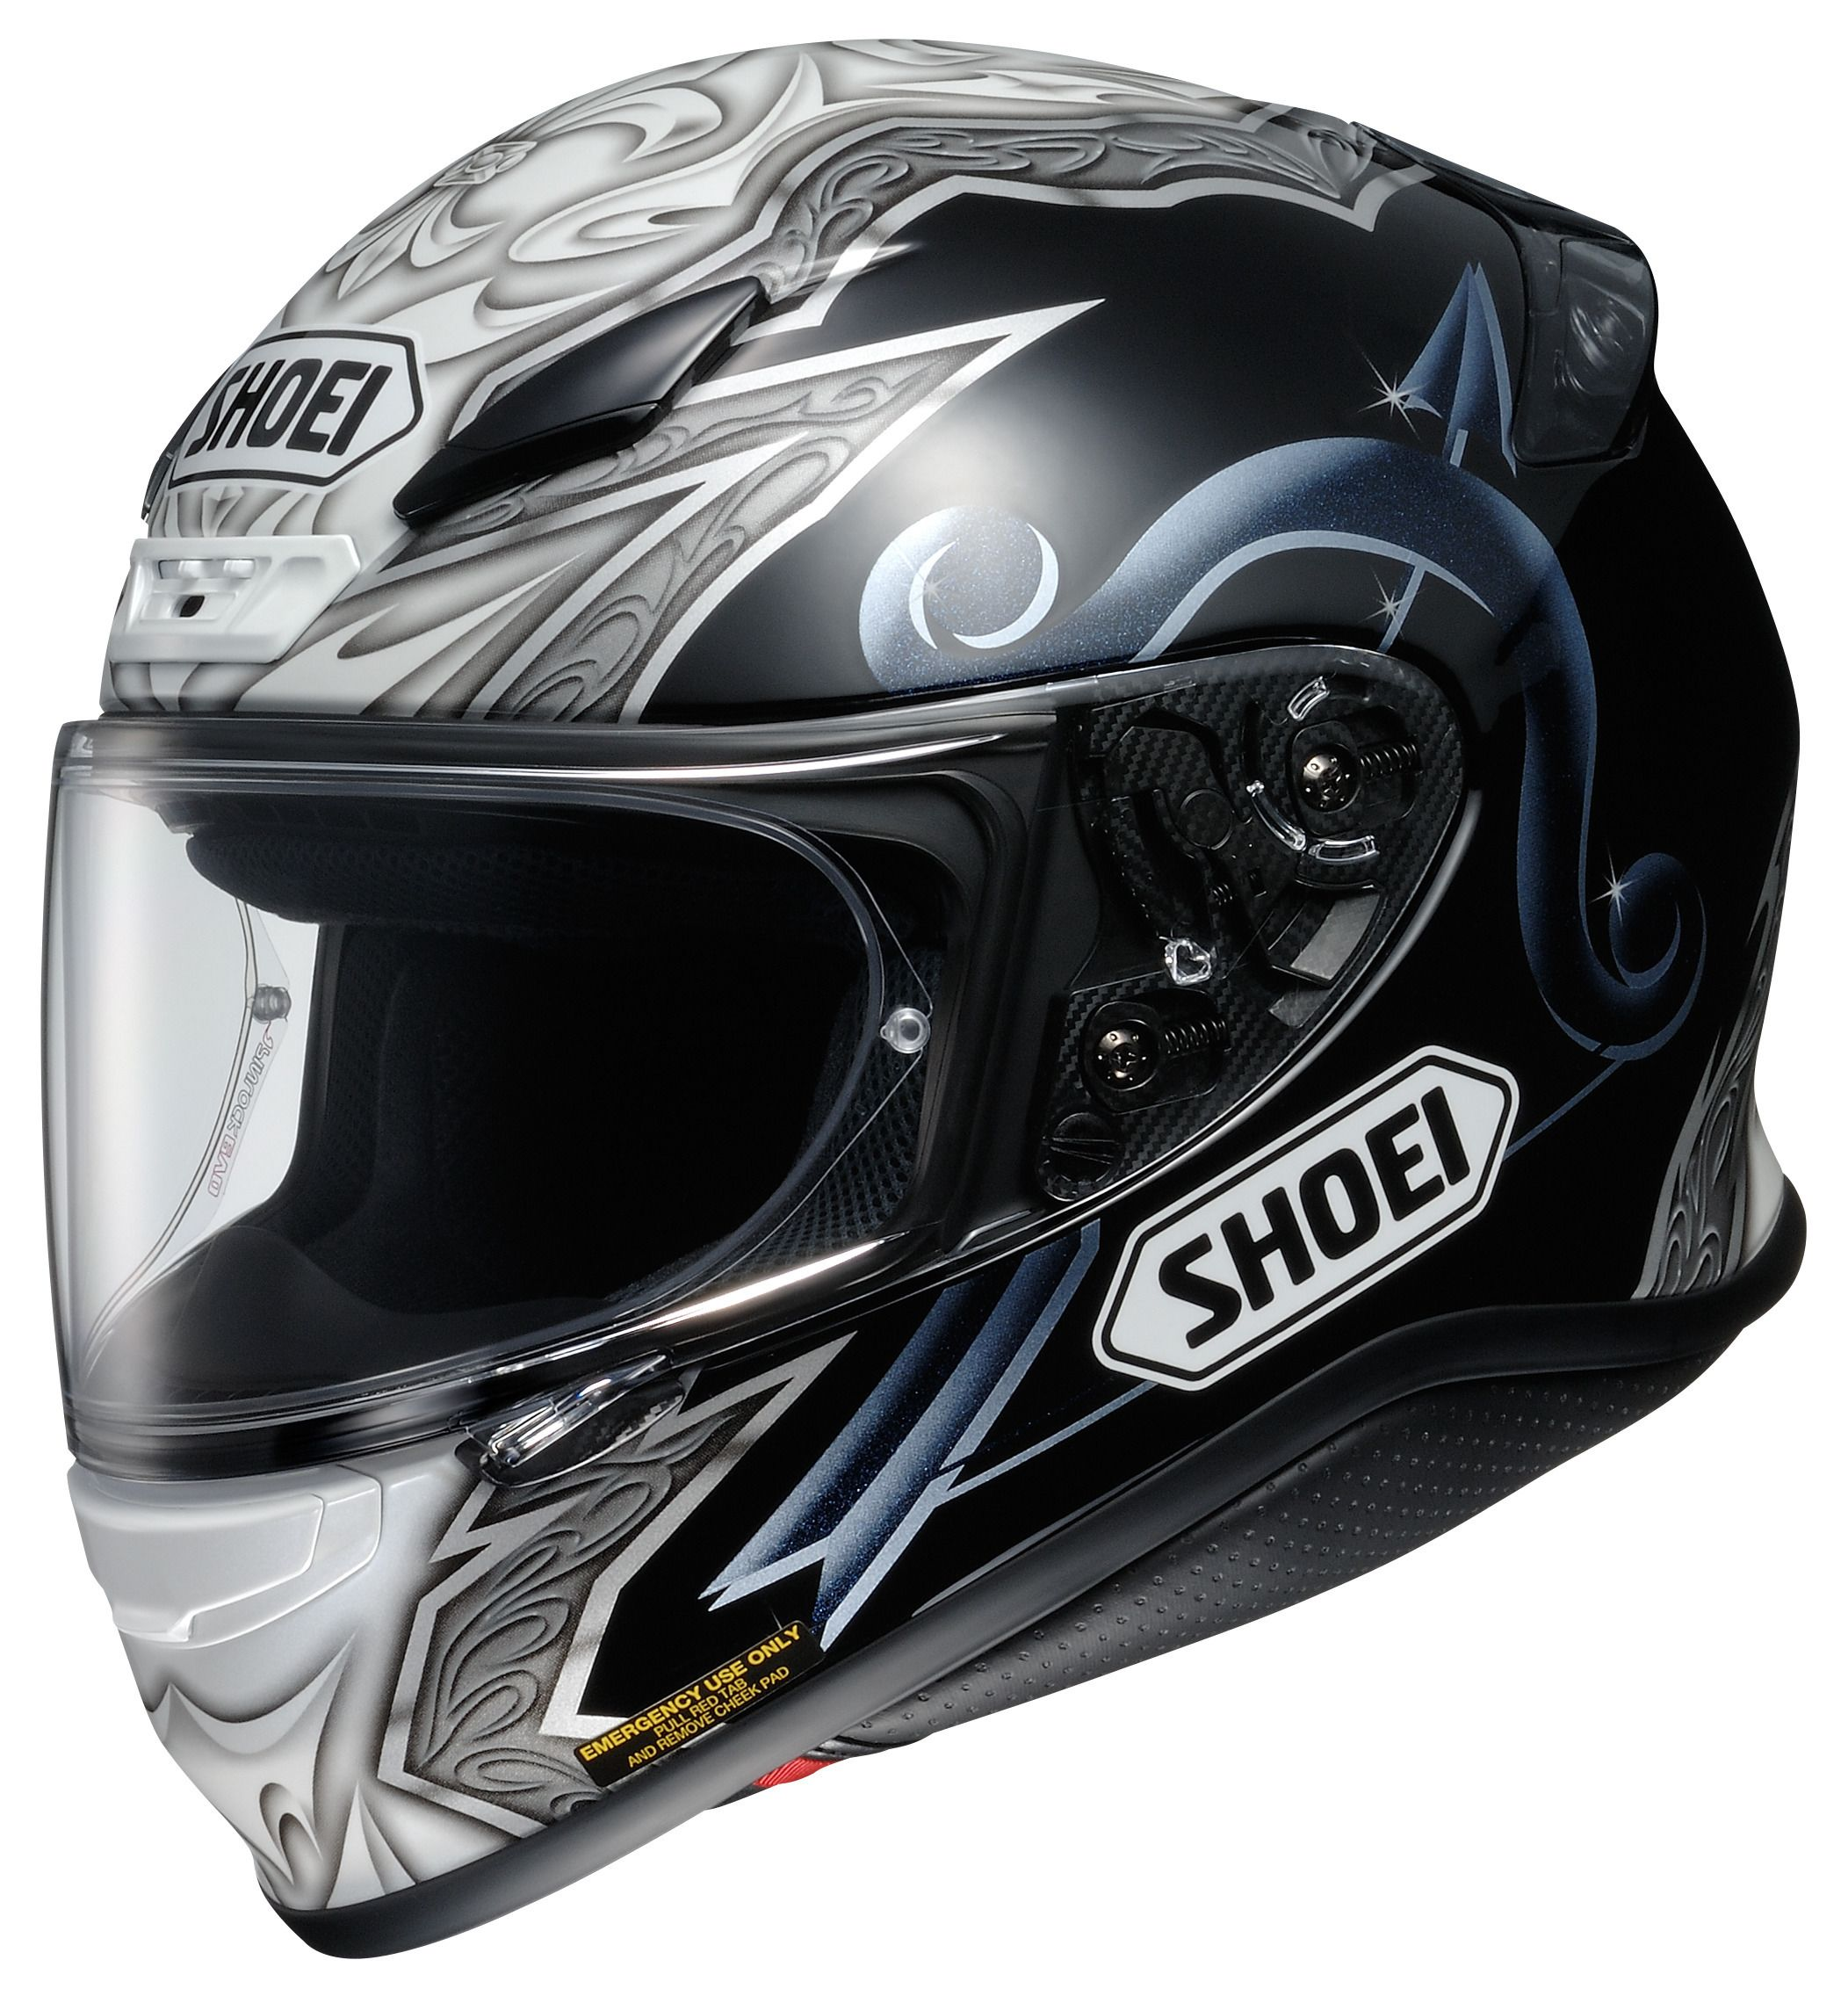 Discount Sportbike Helmets Closeouts Clearance Sales Cycle Gear